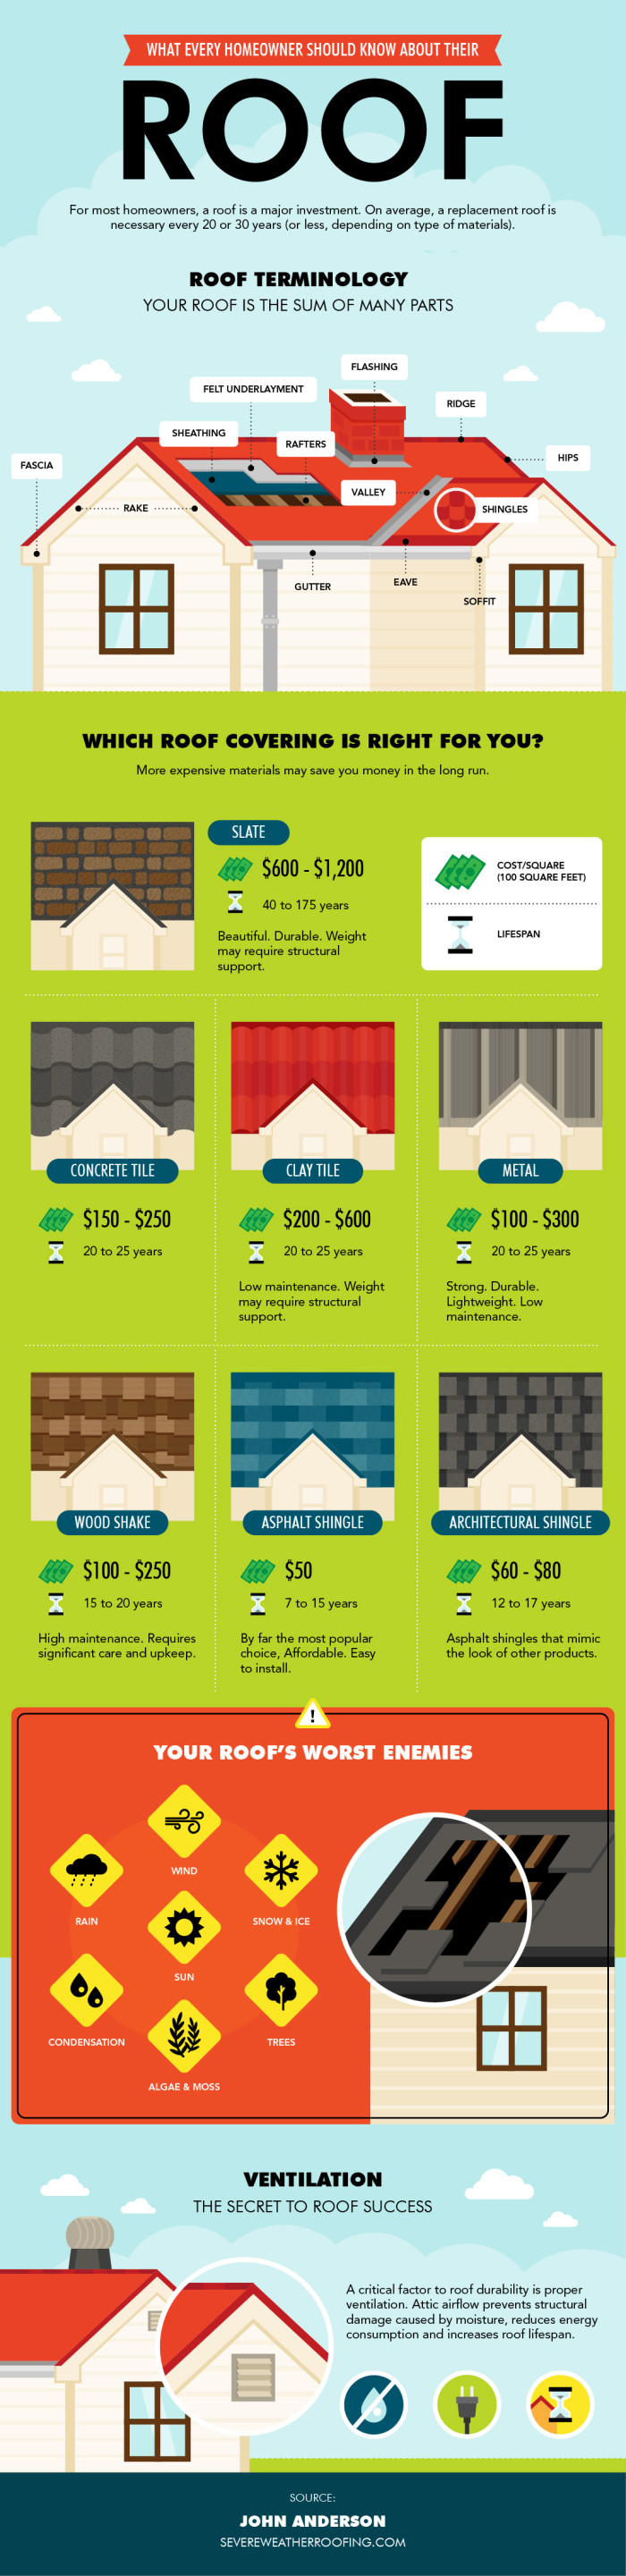 Severe-Weather-Roofing-Infographic-1-e14